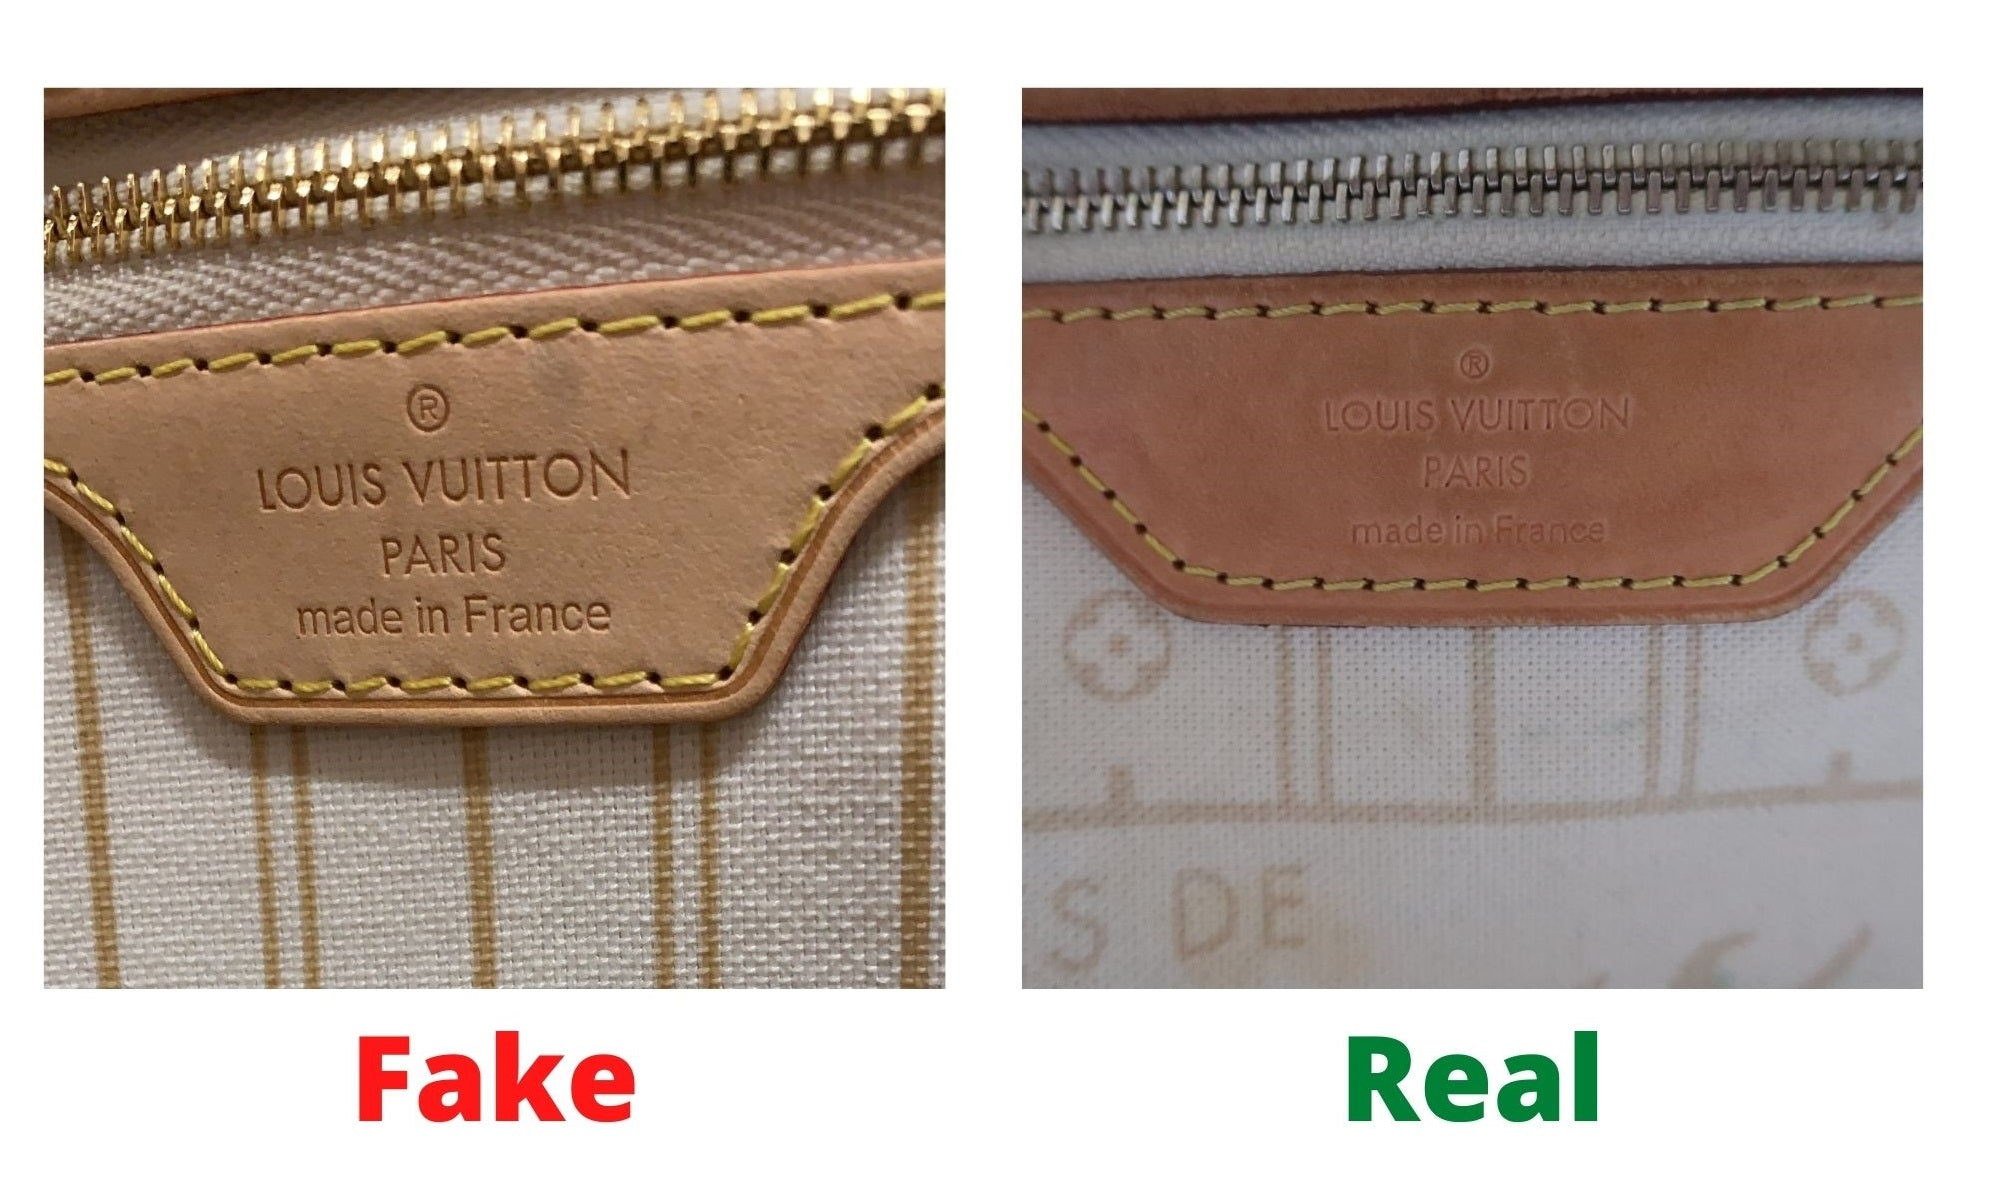 Fake Louis Vuitton Neverfull vs Real: Important Details You Should Definitely Pay Attention To (With Photo Examples) Neverfull Damier Azur heat stamp